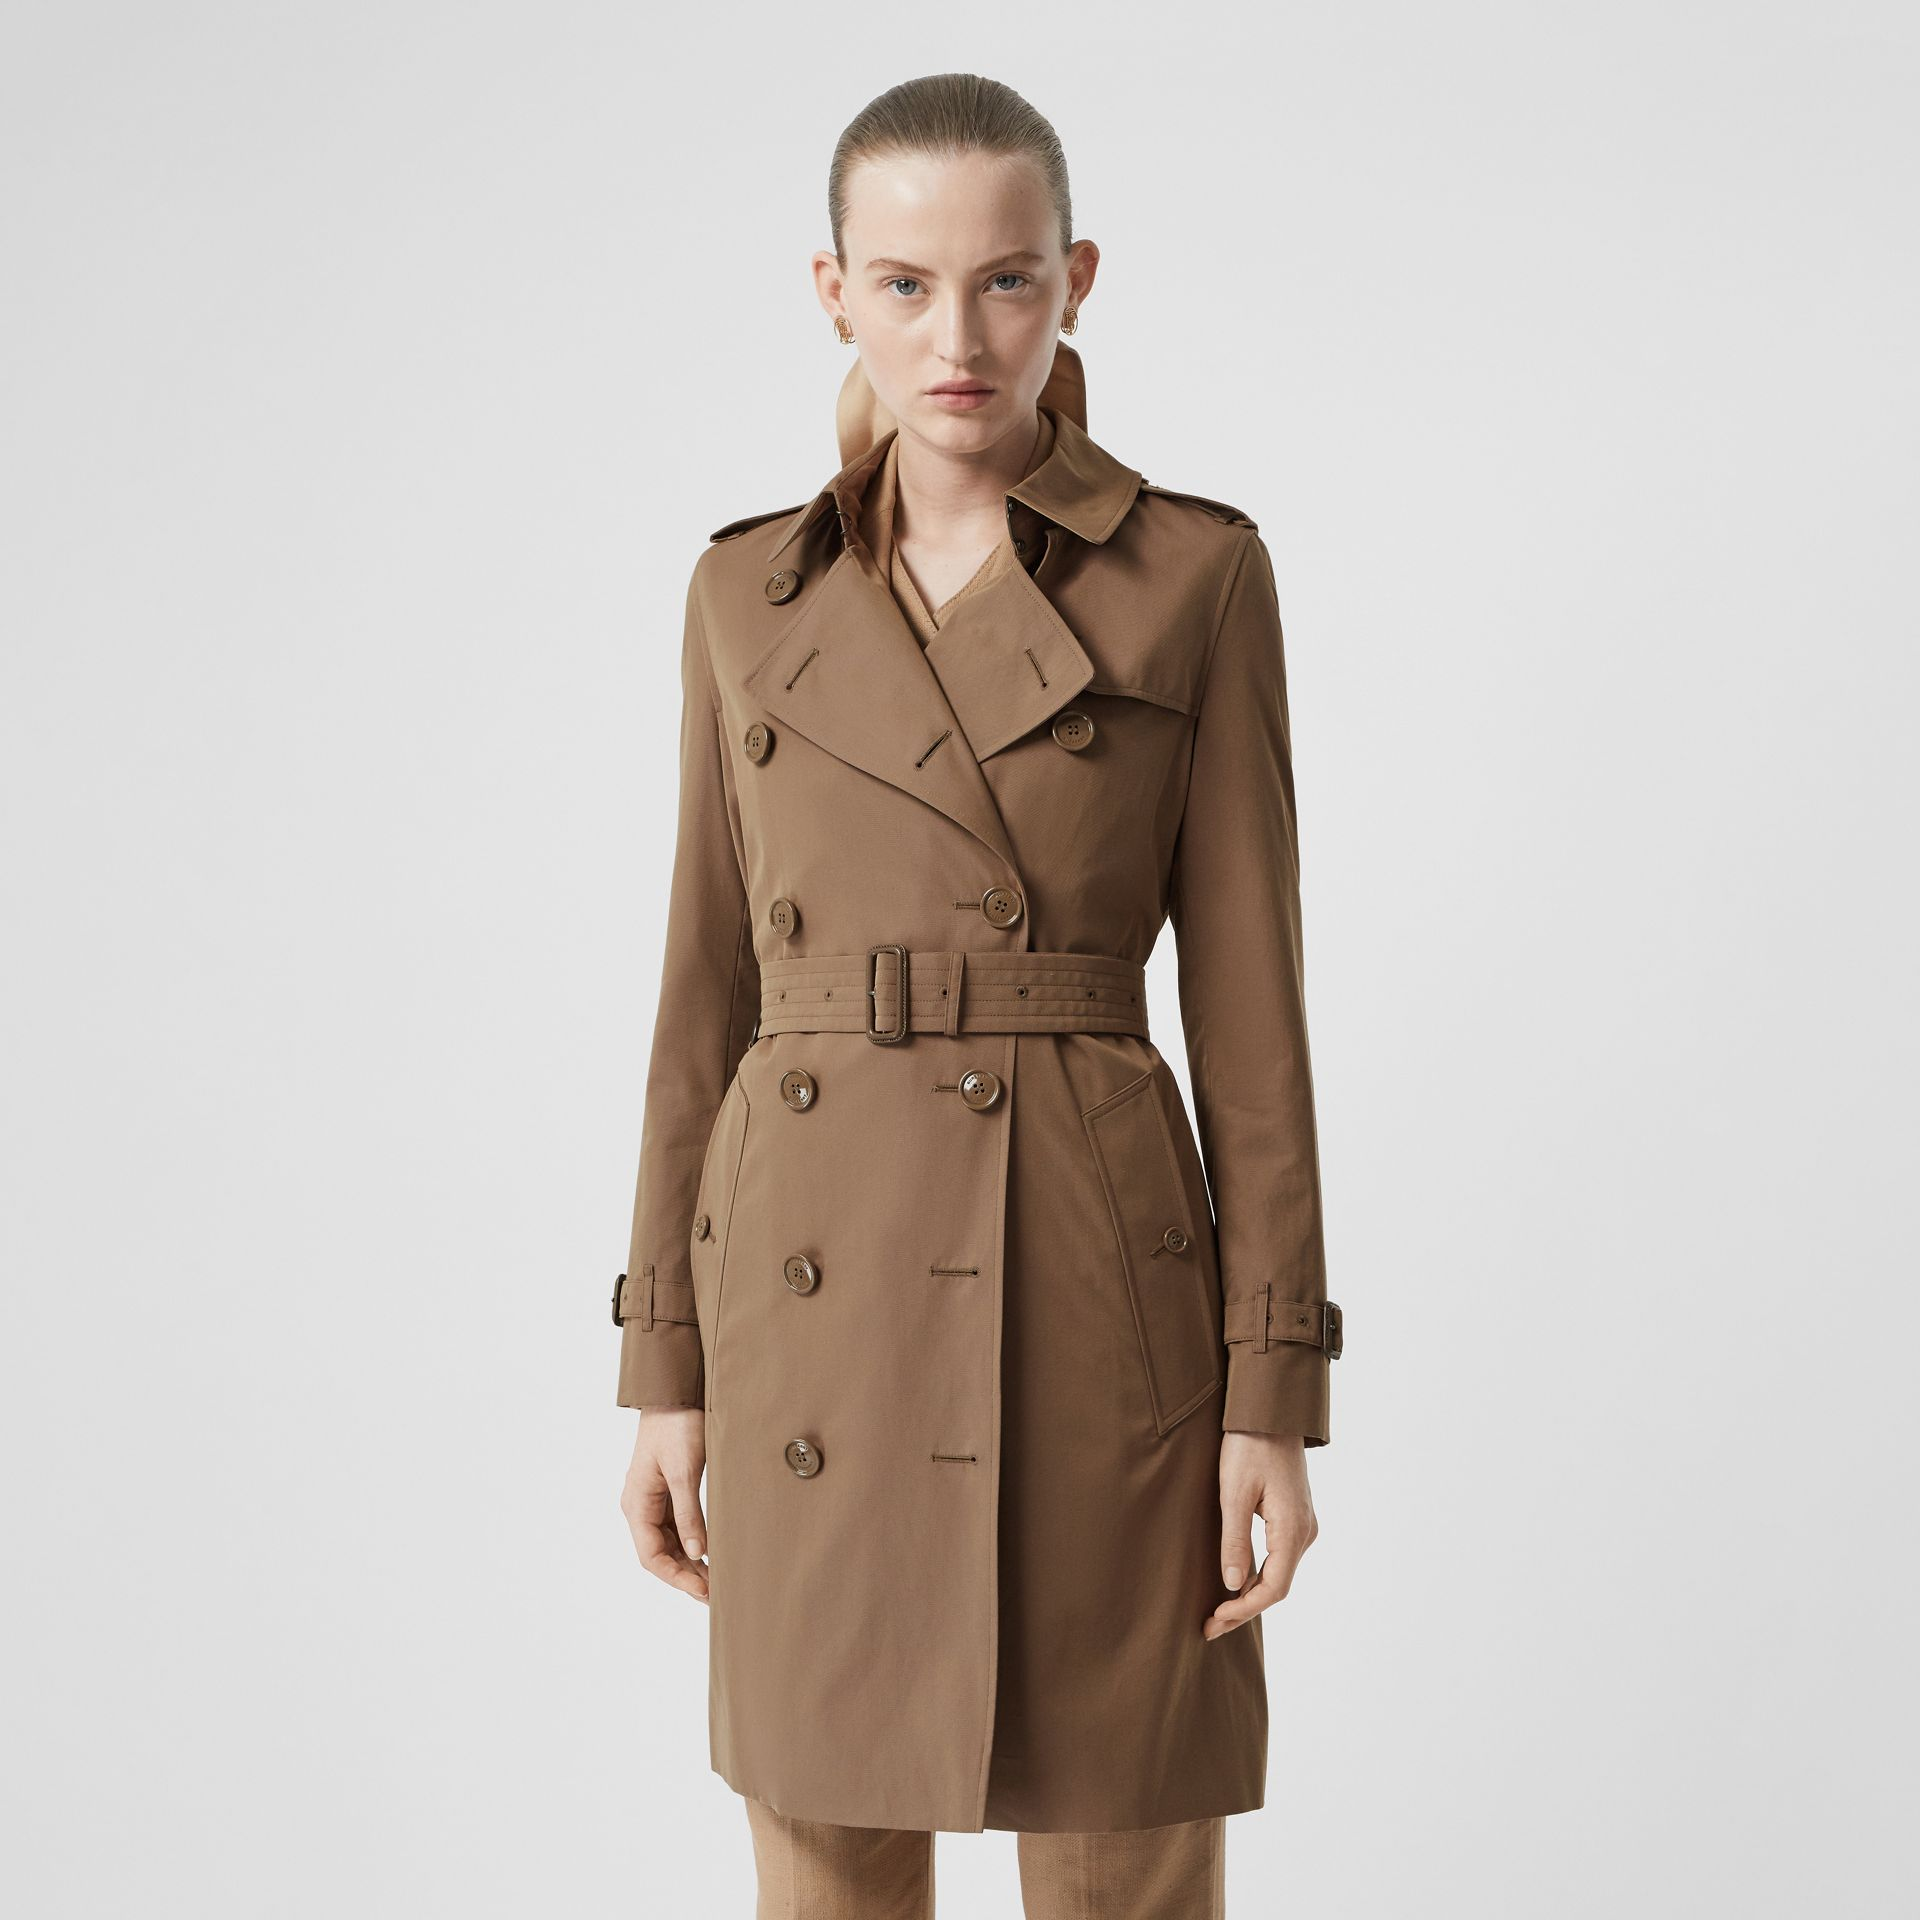 Tropical Gabardine Trench Coat in Taupe - Women | Burberry Australia - gallery image 6